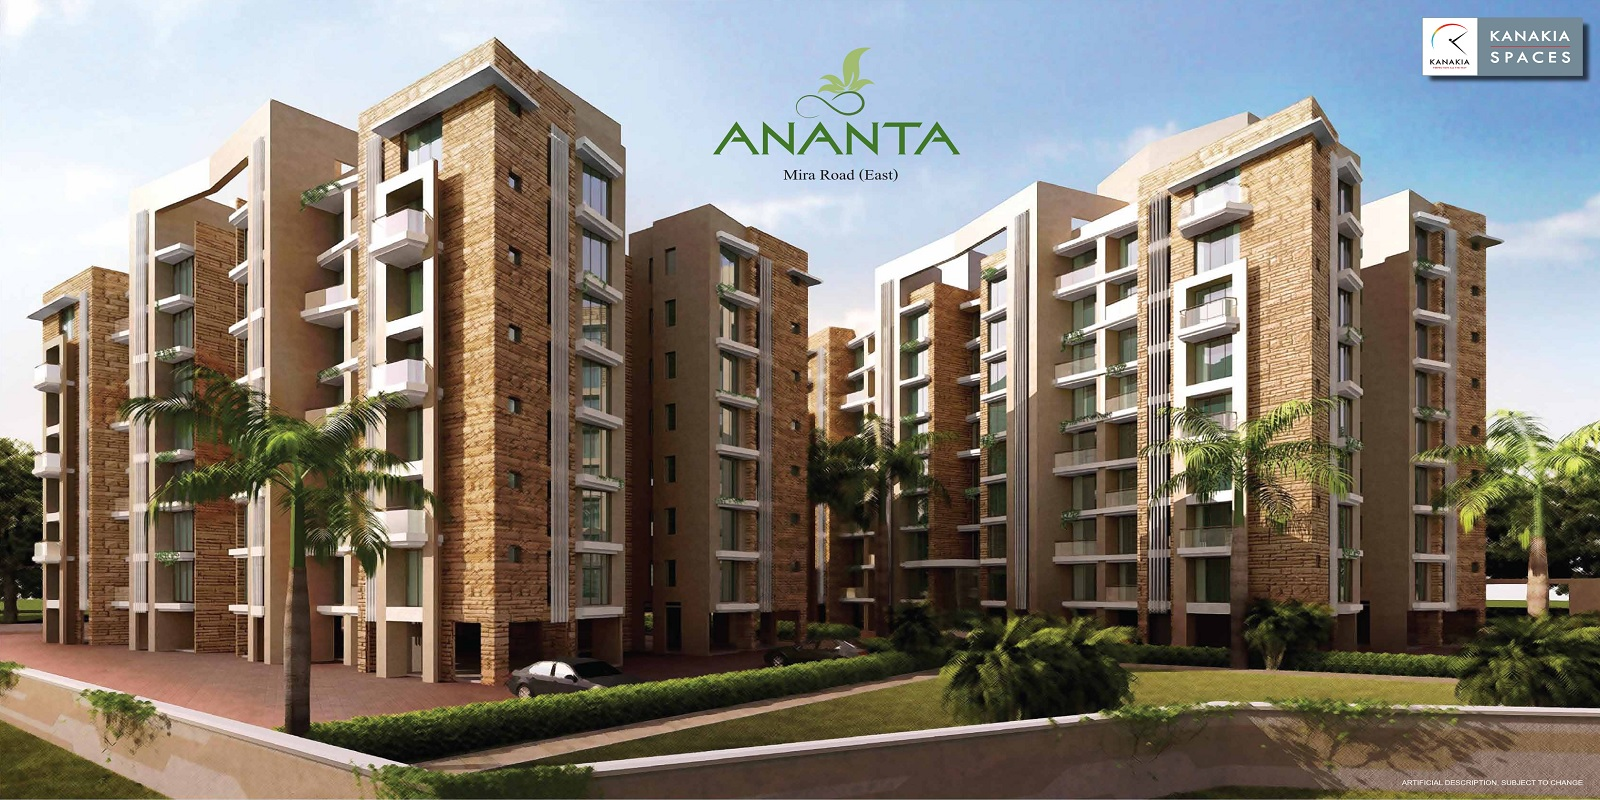 kanakia spaces ananta project project large image1